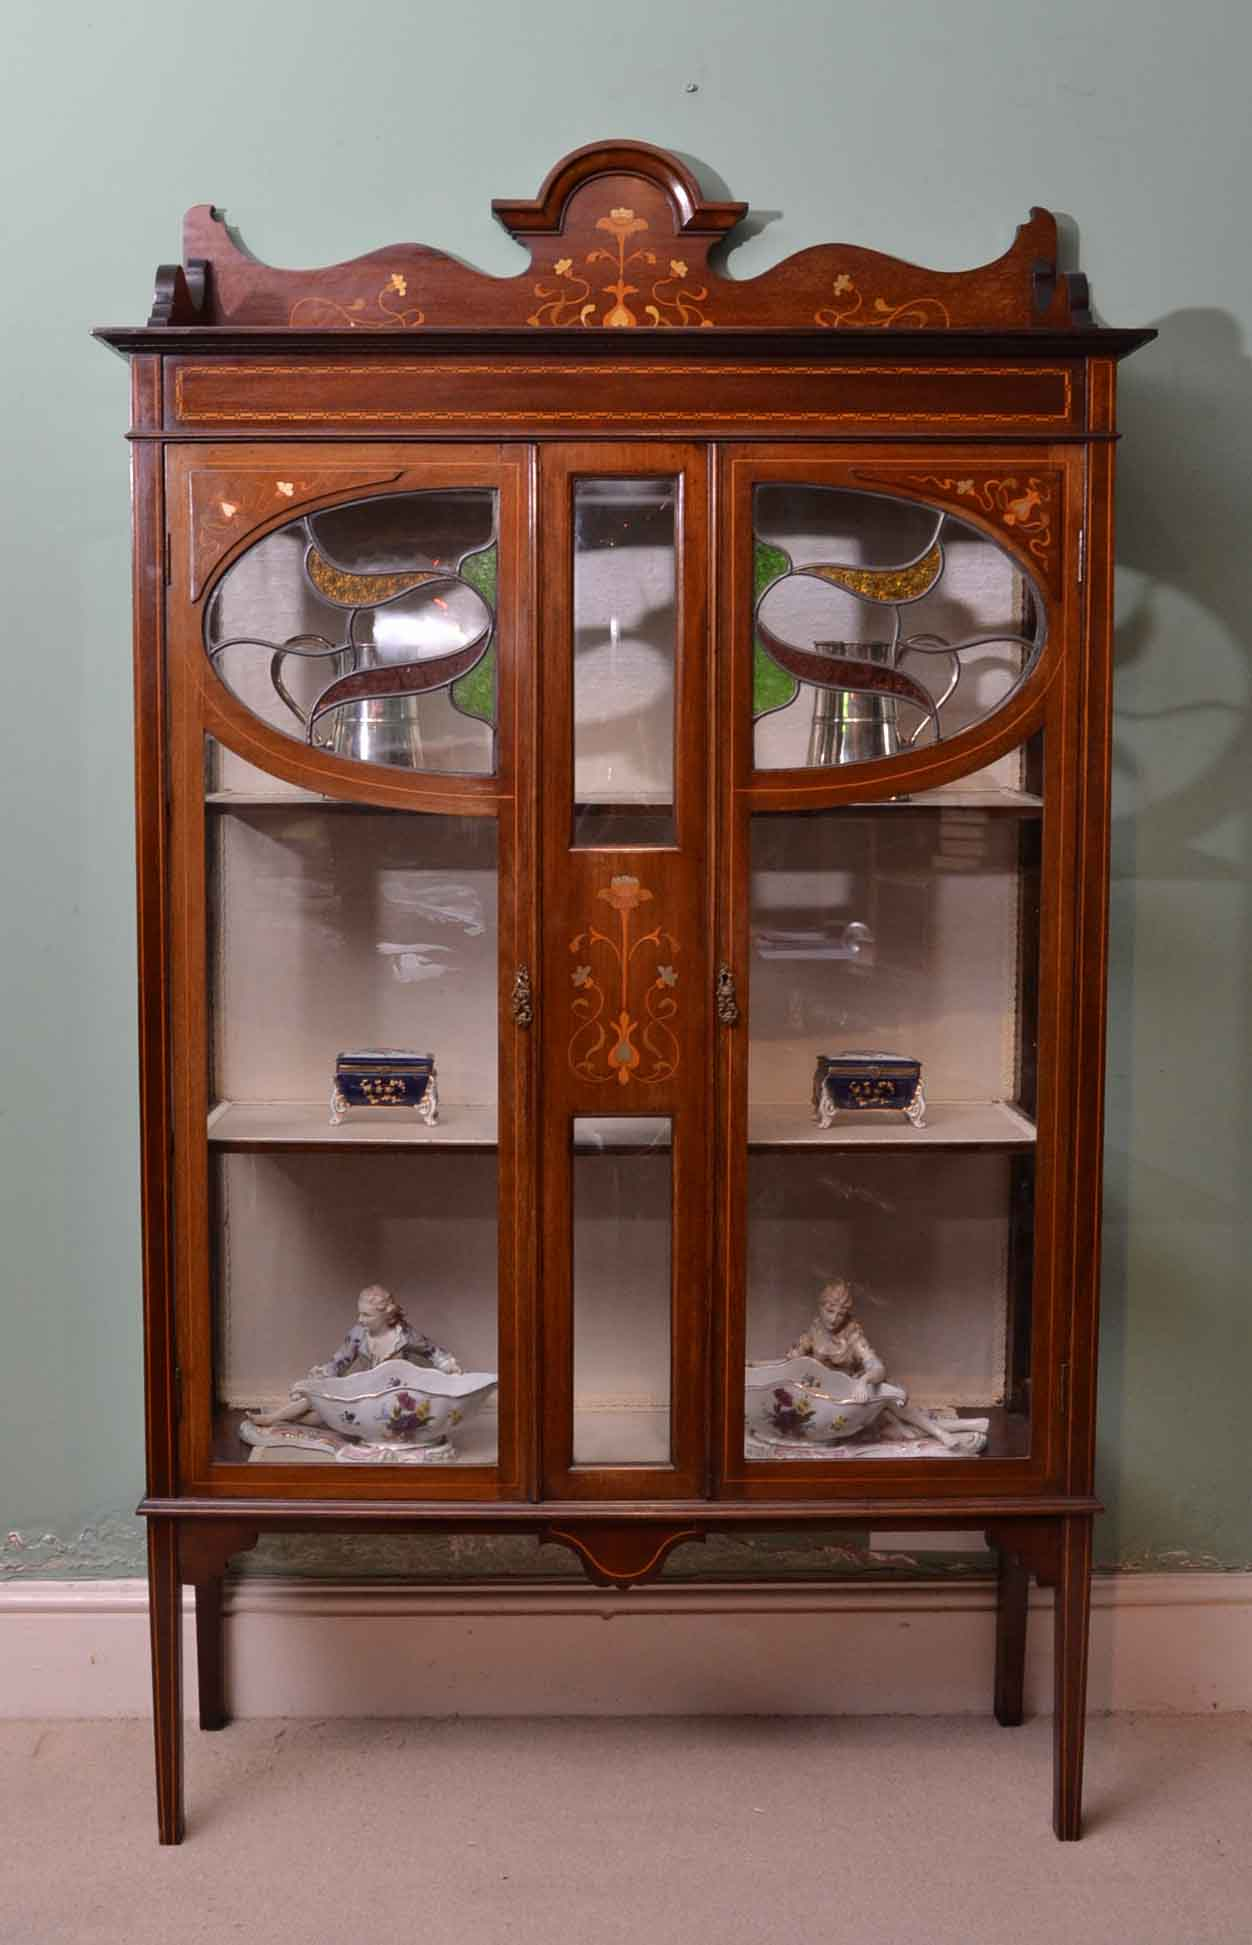 - Antique Art Nouveau Inlaid Display Cabinet C1900 Ref. No. 03964